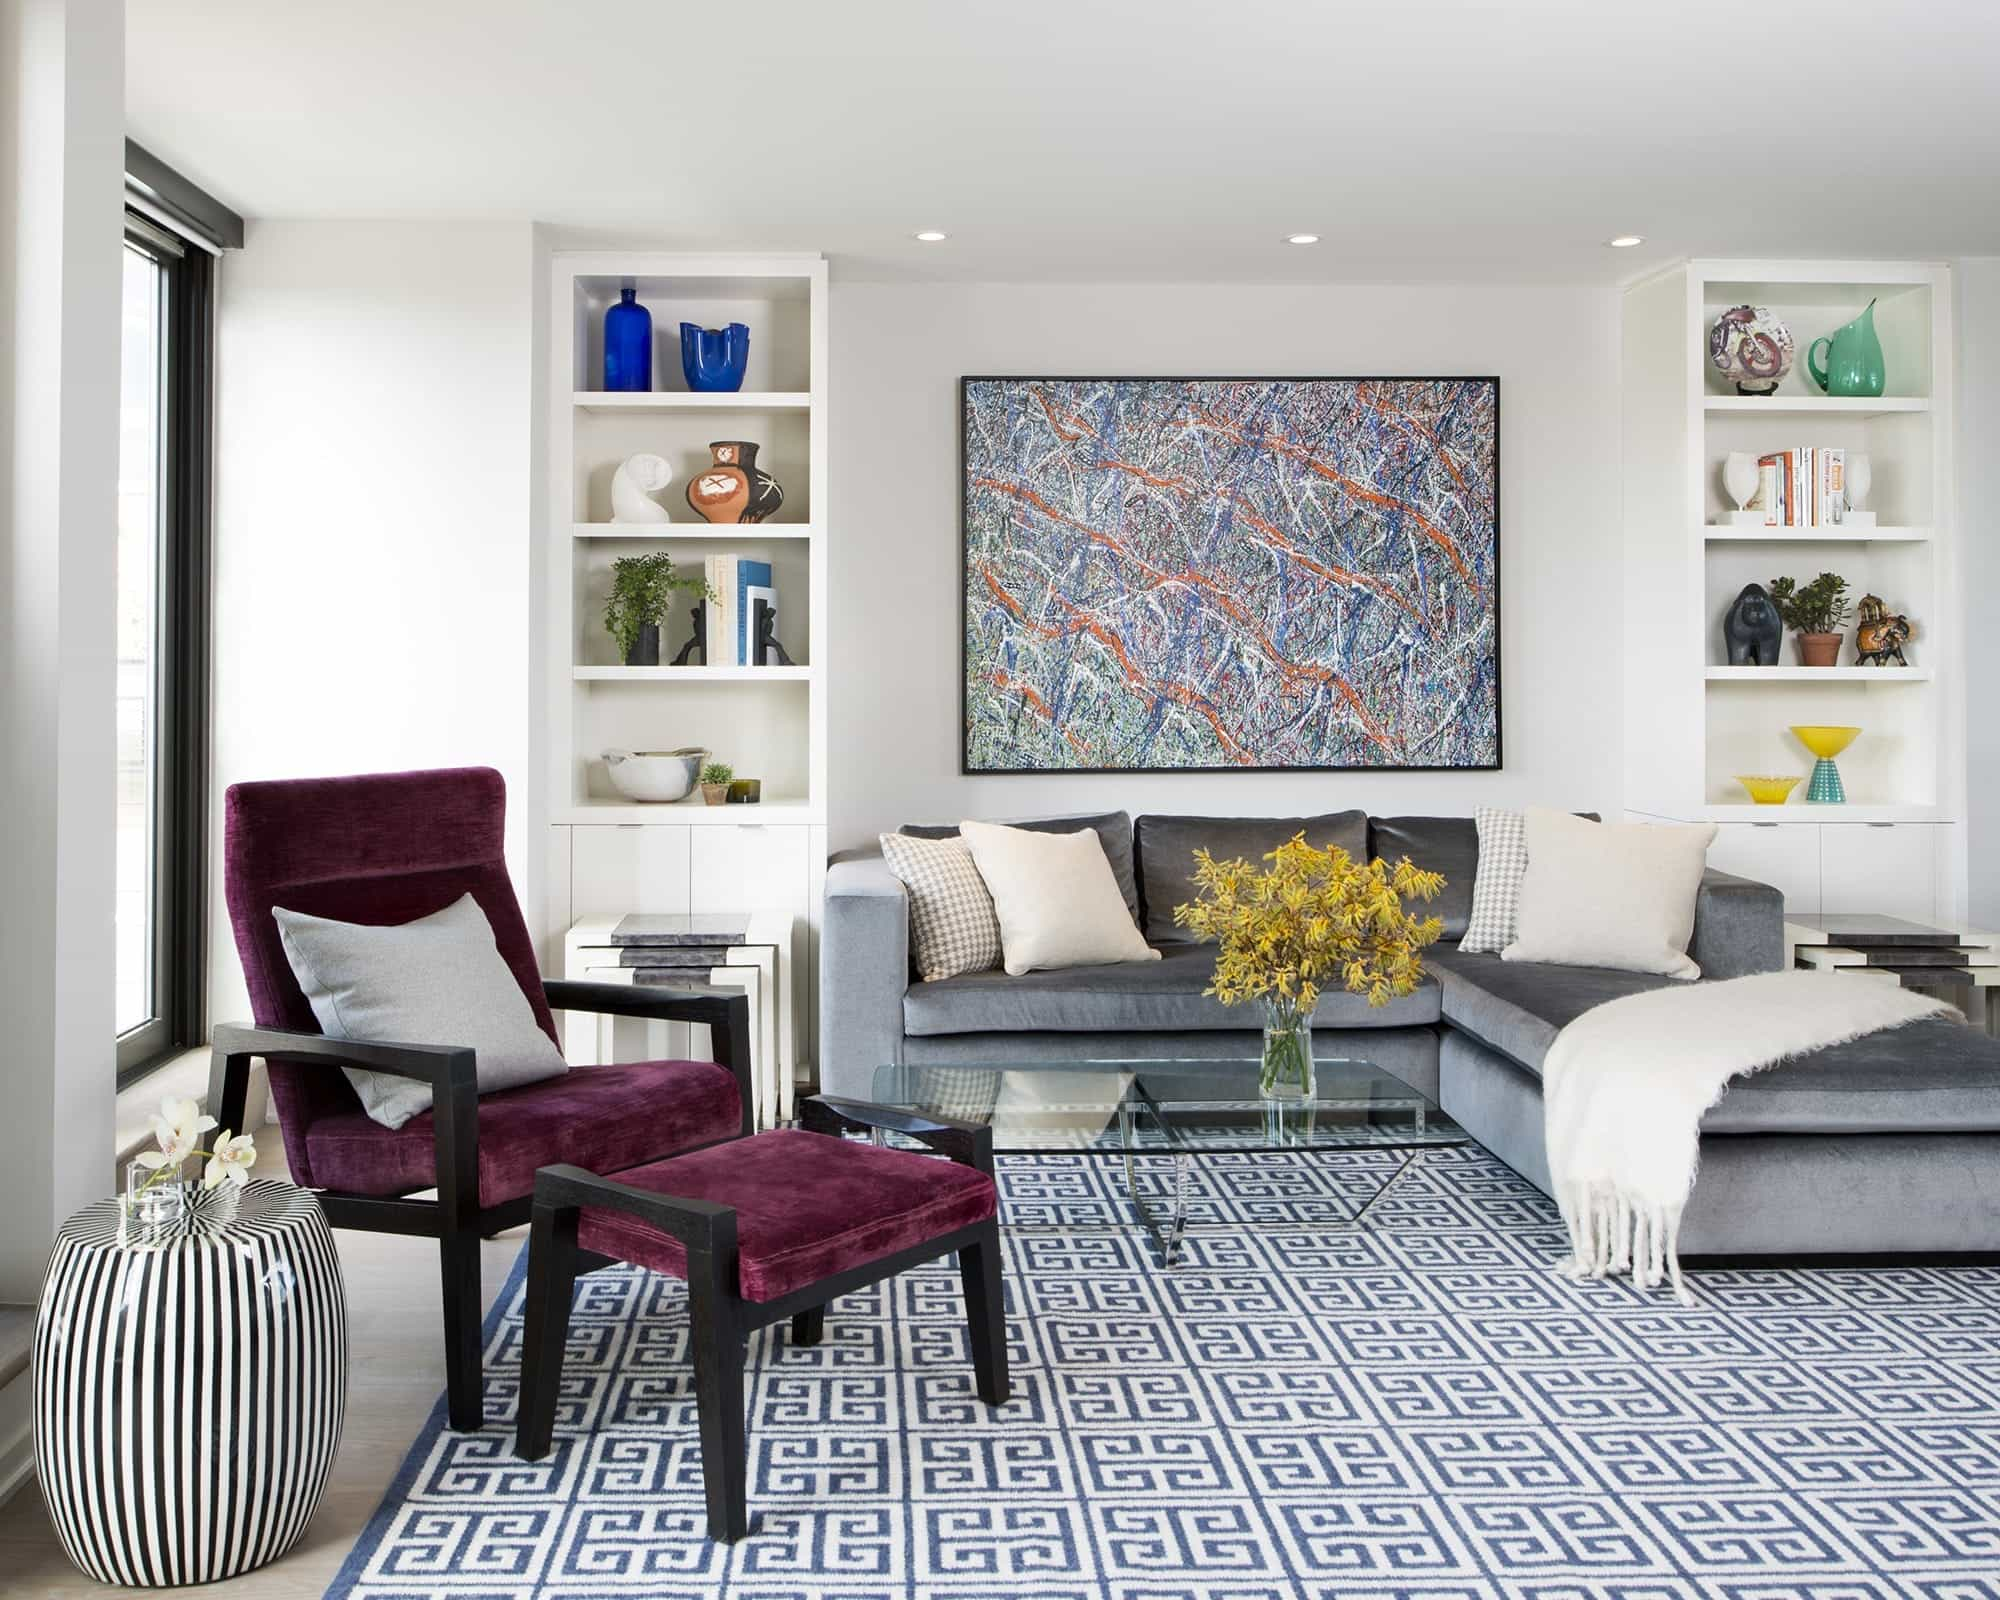 Classy Modern Living Room With Maroon Chair And Greek Key Rug Carpet Flooring (View 13 of 13)